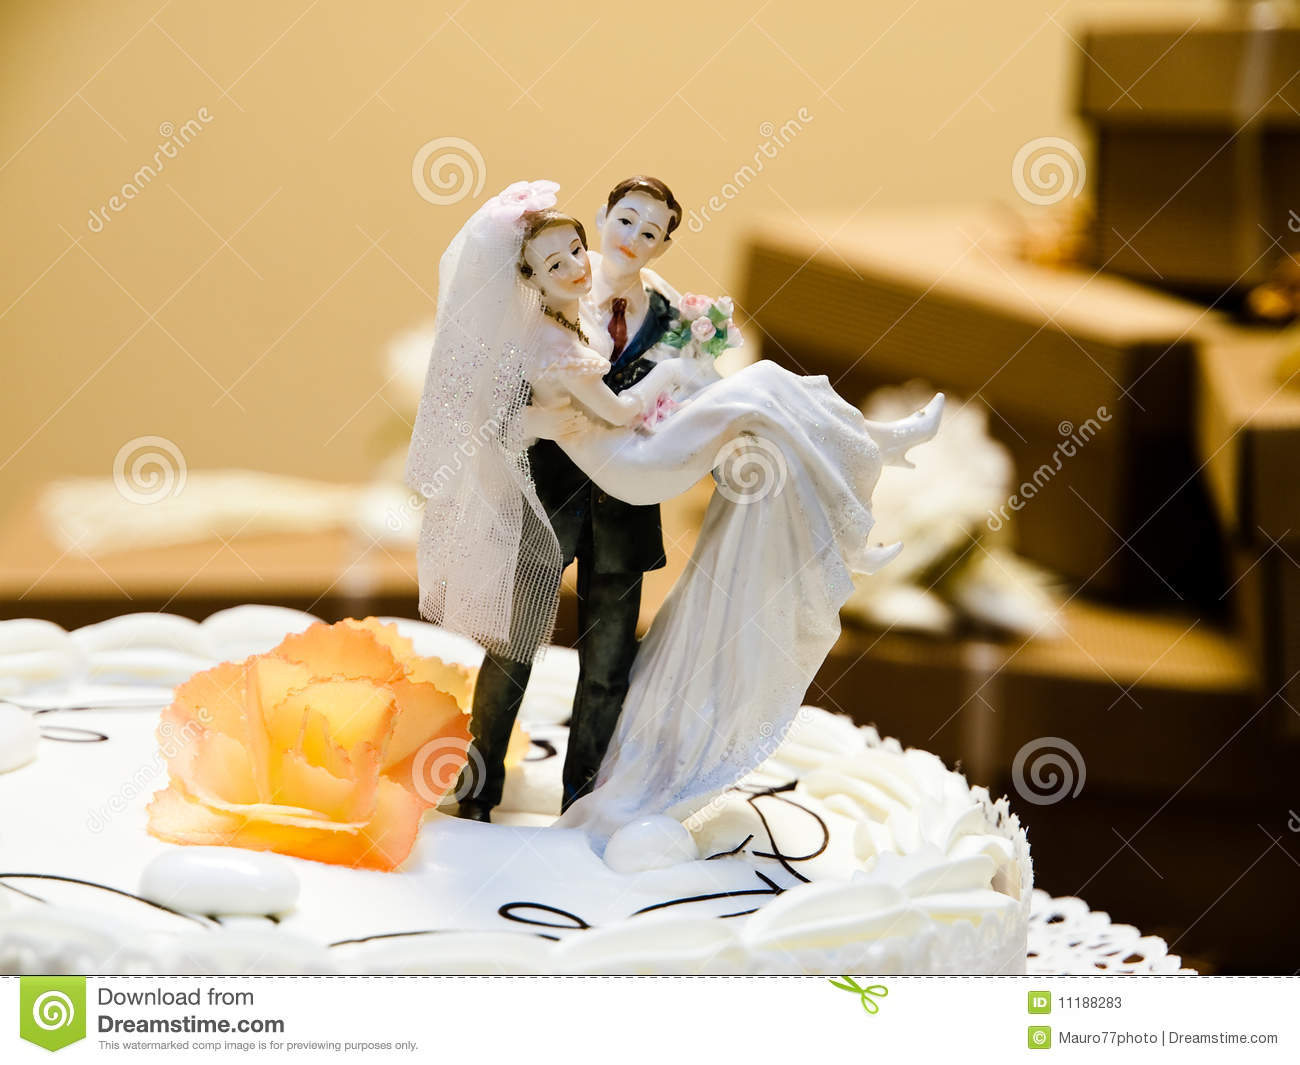 Married, Couple - Free images on Pixabay